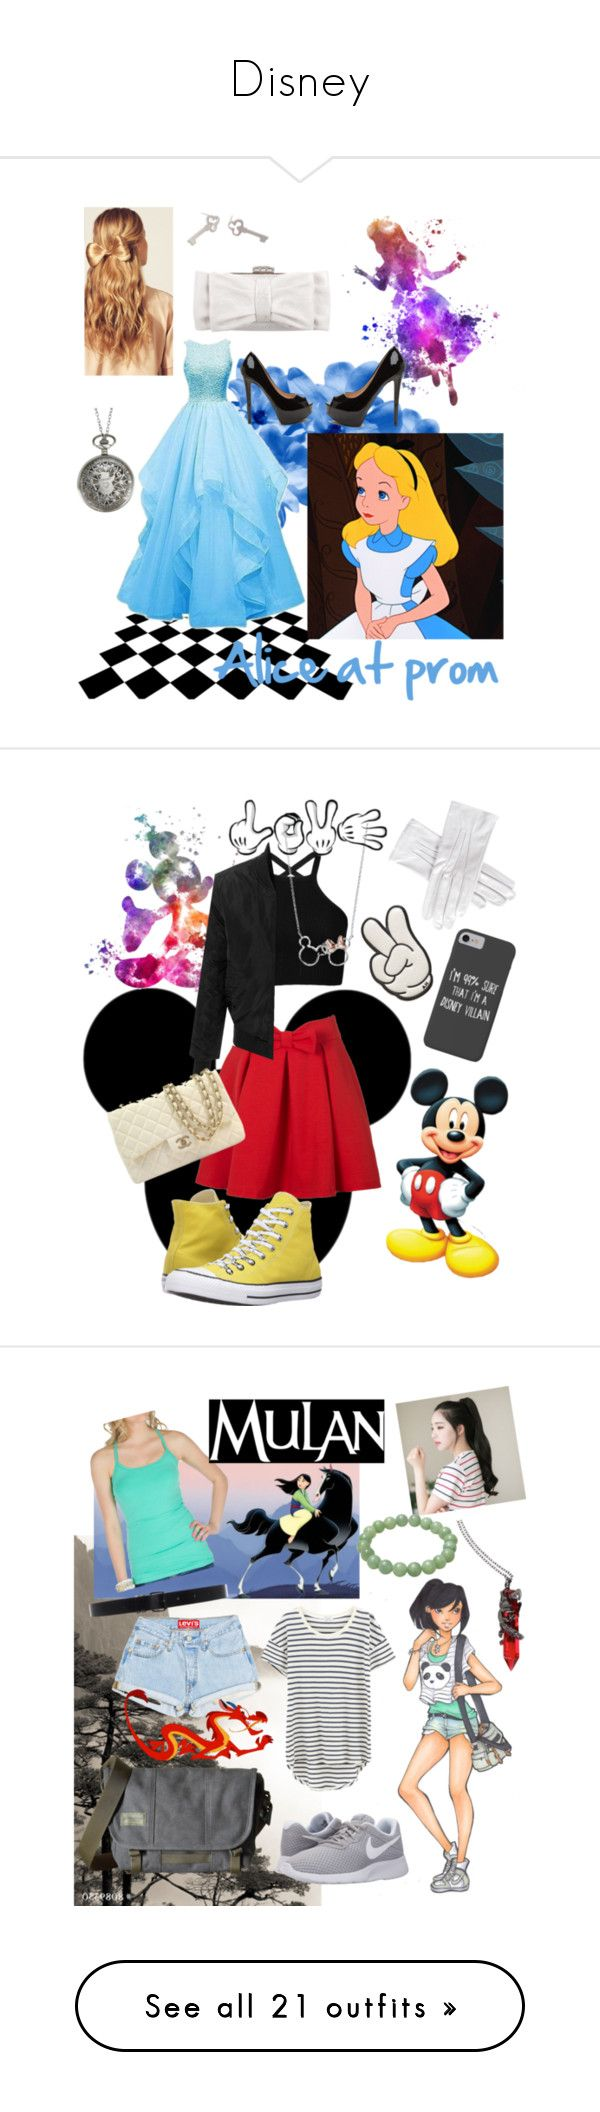 """""""Disney"""" by zebralover-333 ❤ liked on Polyvore featuring Disney, Sian Bostwick Jewellery, Hershesons, Judith Leiber, WithChic, Converse, LE3NO, Anya Hindmarch, Chanel and Black"""